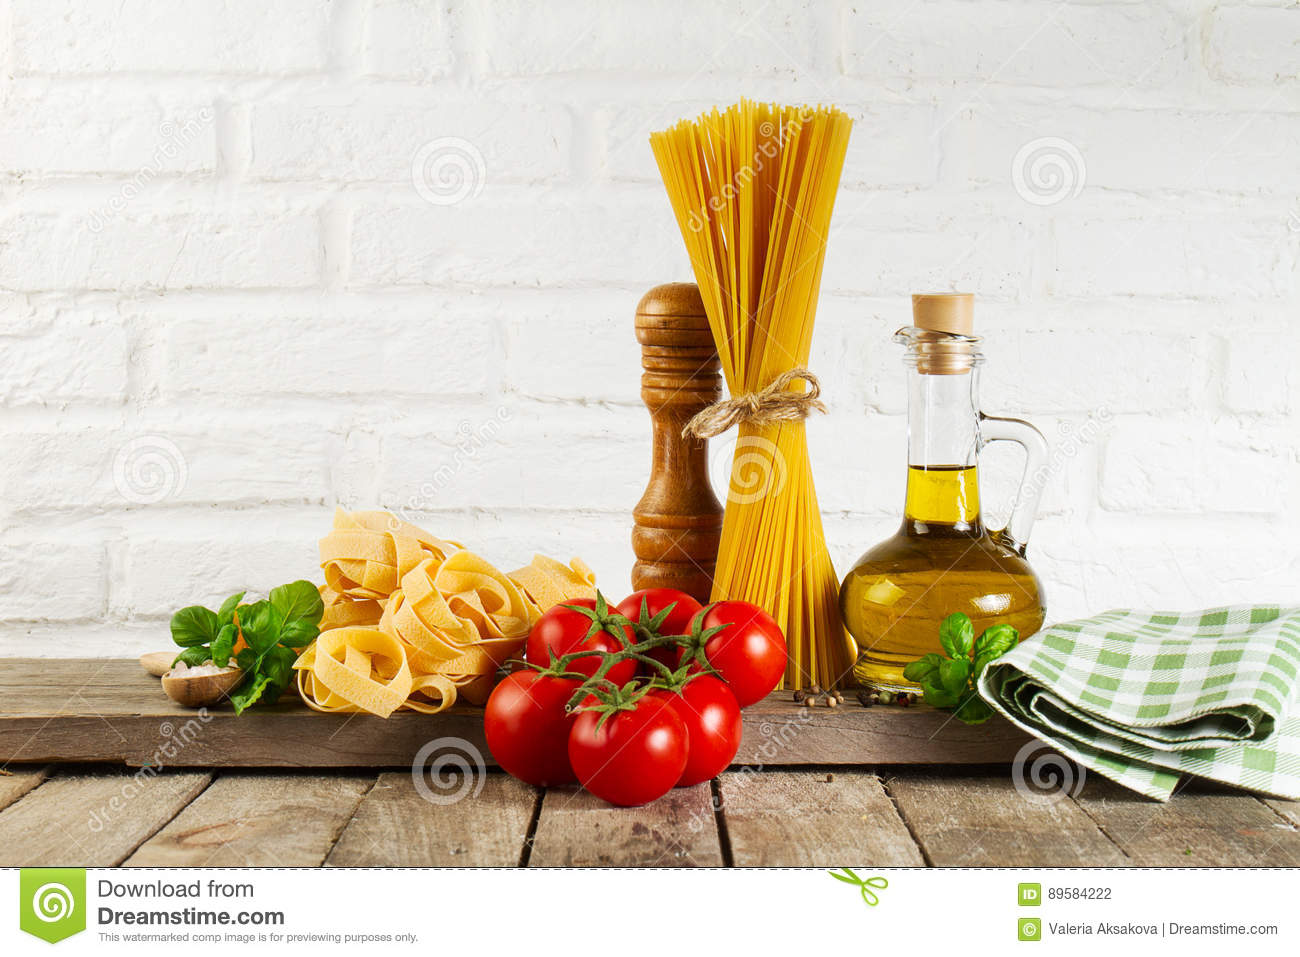 Download Tasty Fresh Colorful Italian Food Raw Spaghetti On Kitchen Table Stock Photo - Image of bundle, culinary: 89584222